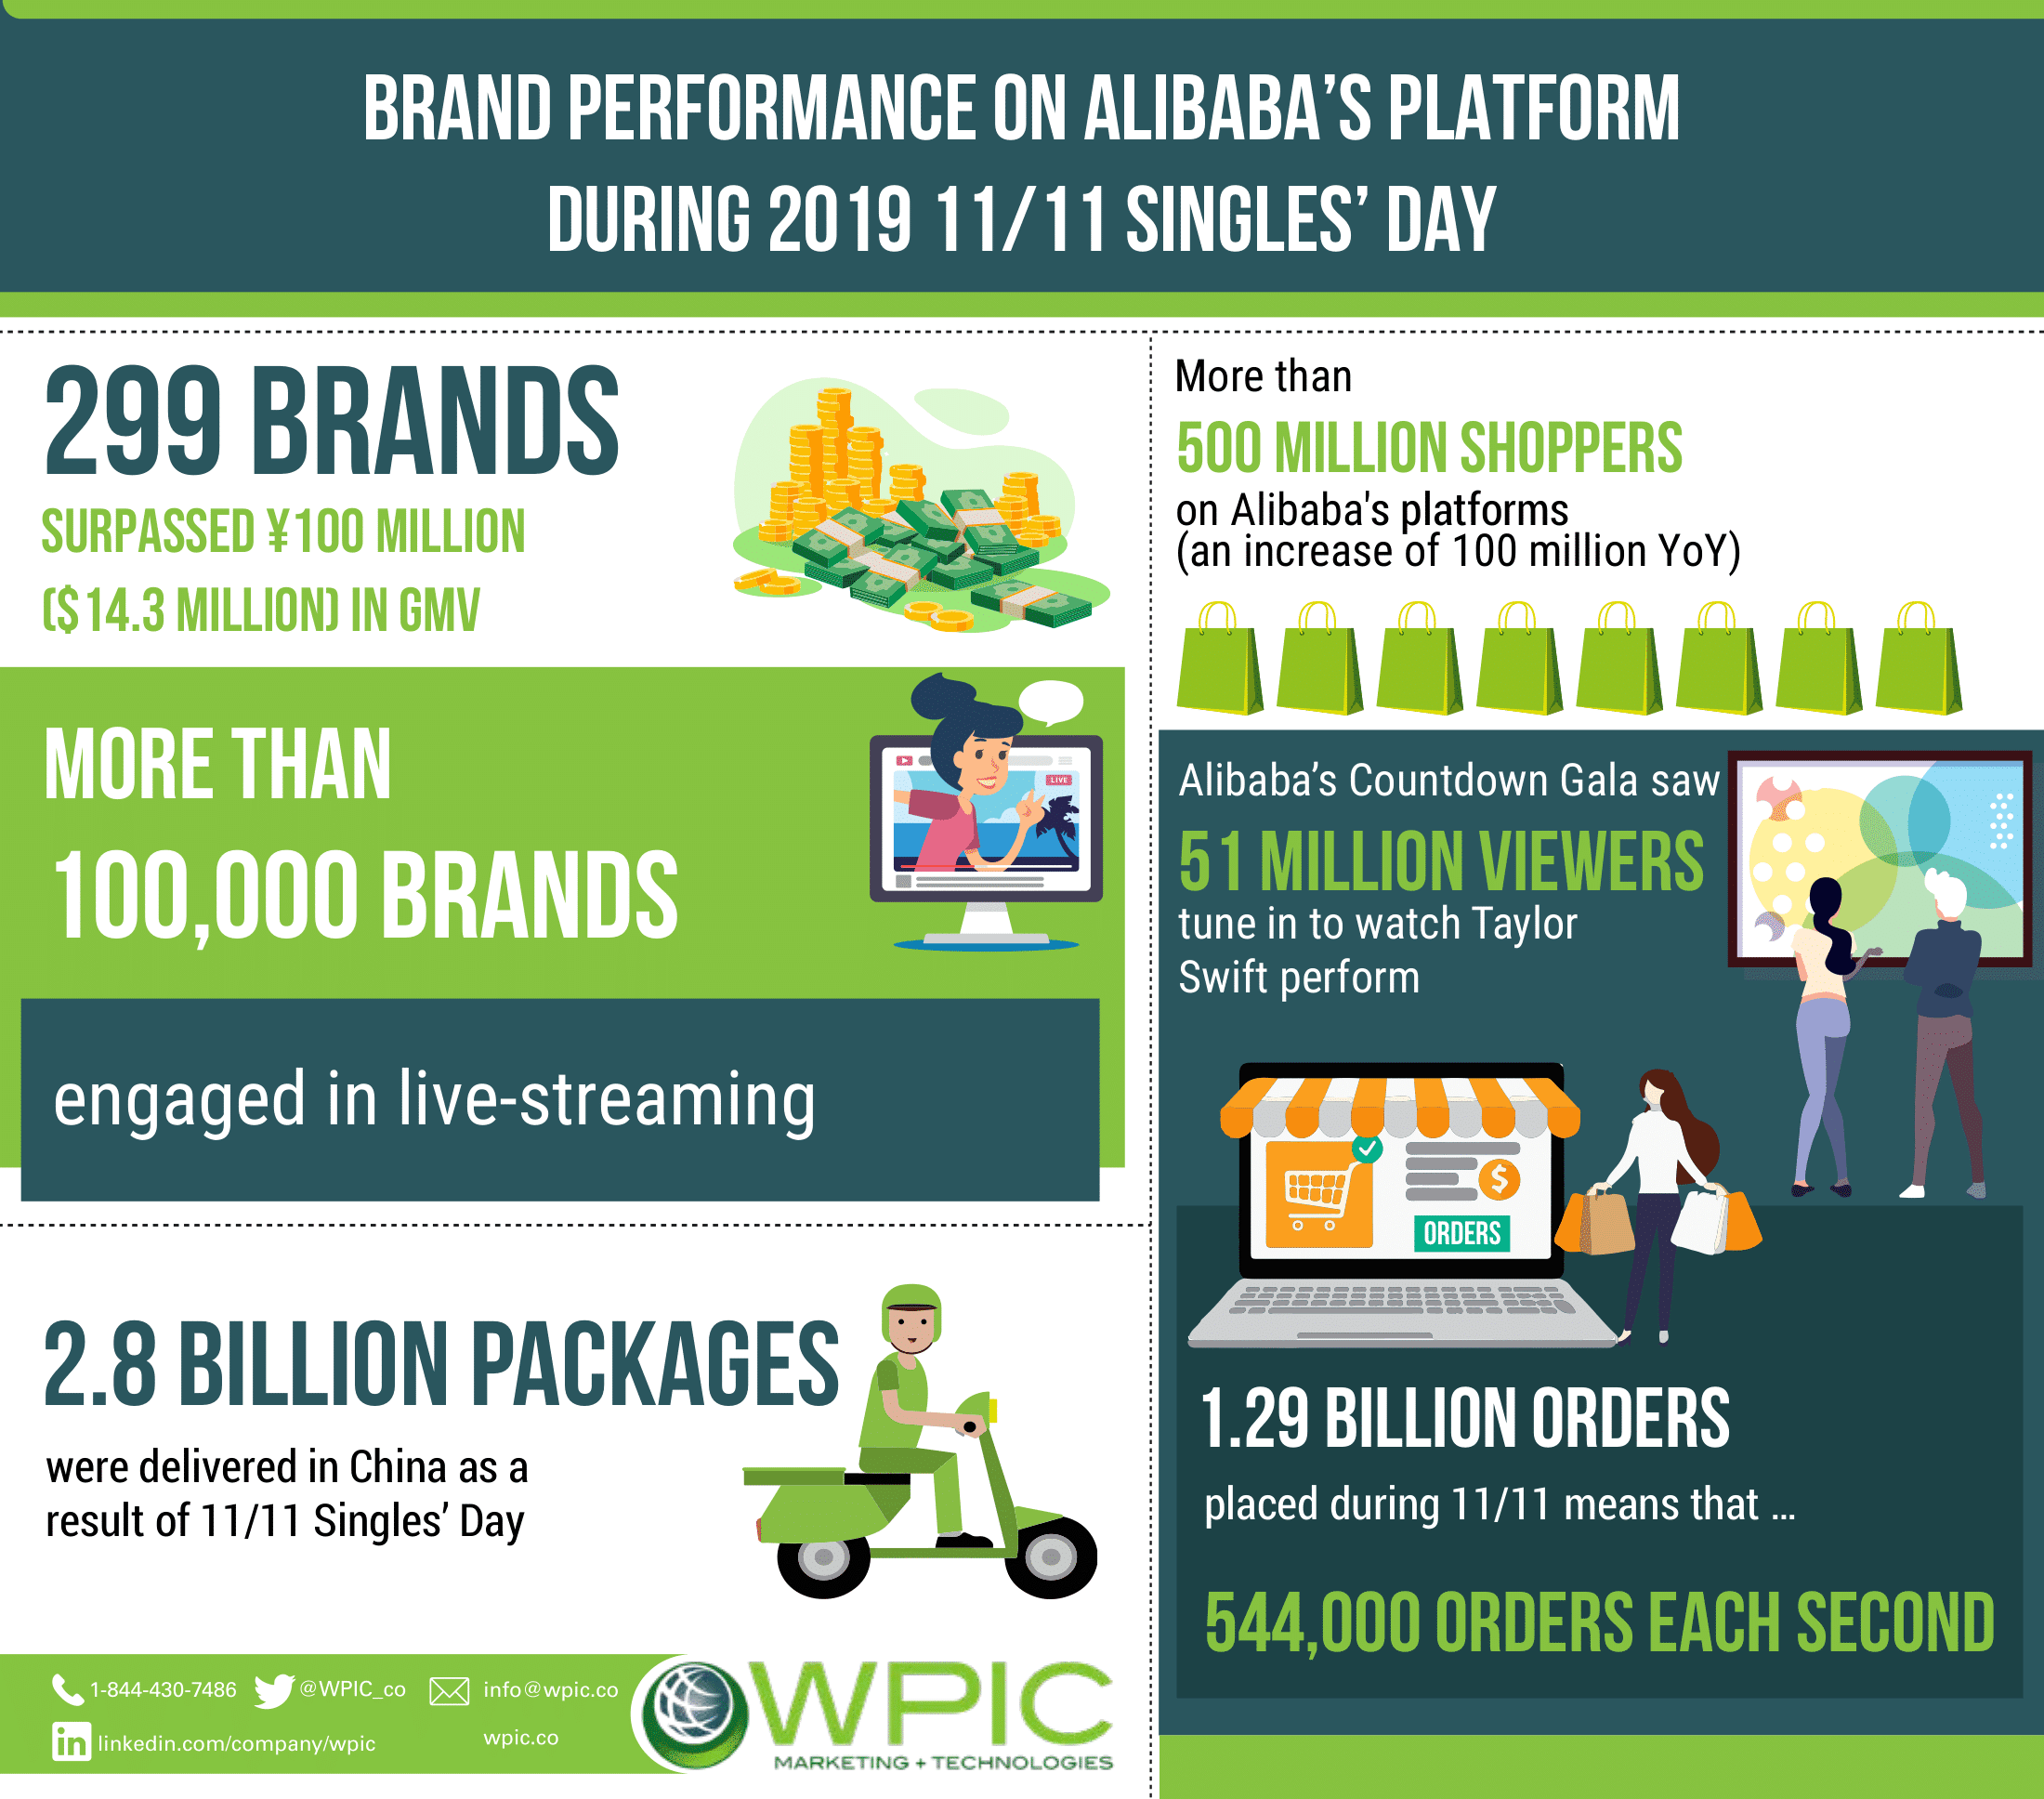 Brand performance on Alibaba's platform during 2019 11/11 Singles' Day infographic